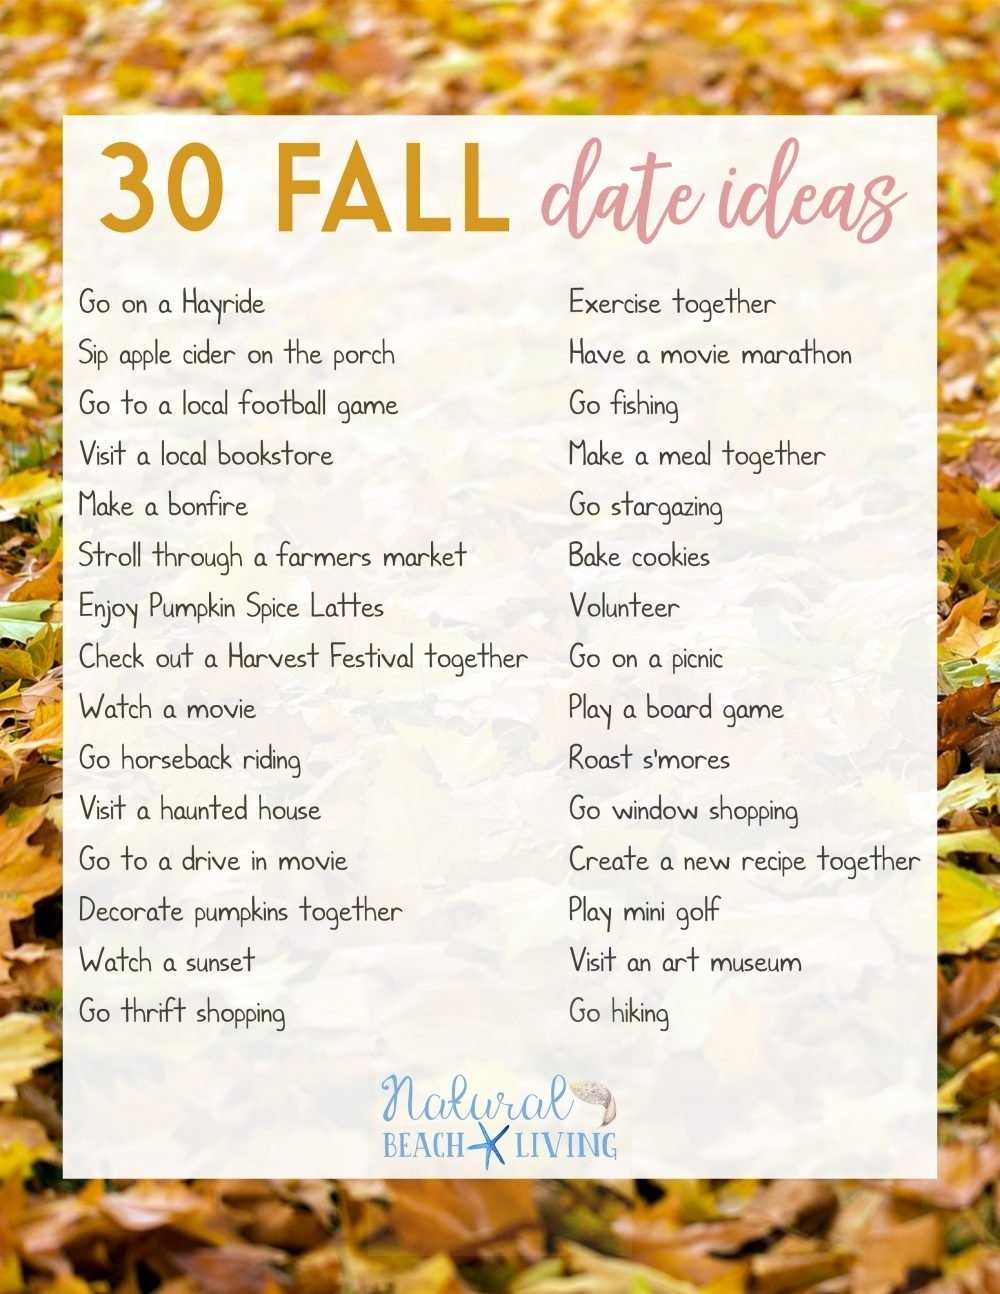 10 Fashionable Fun Date Ideas For Couples fun date night ideas for fall natural beach living 6 2020